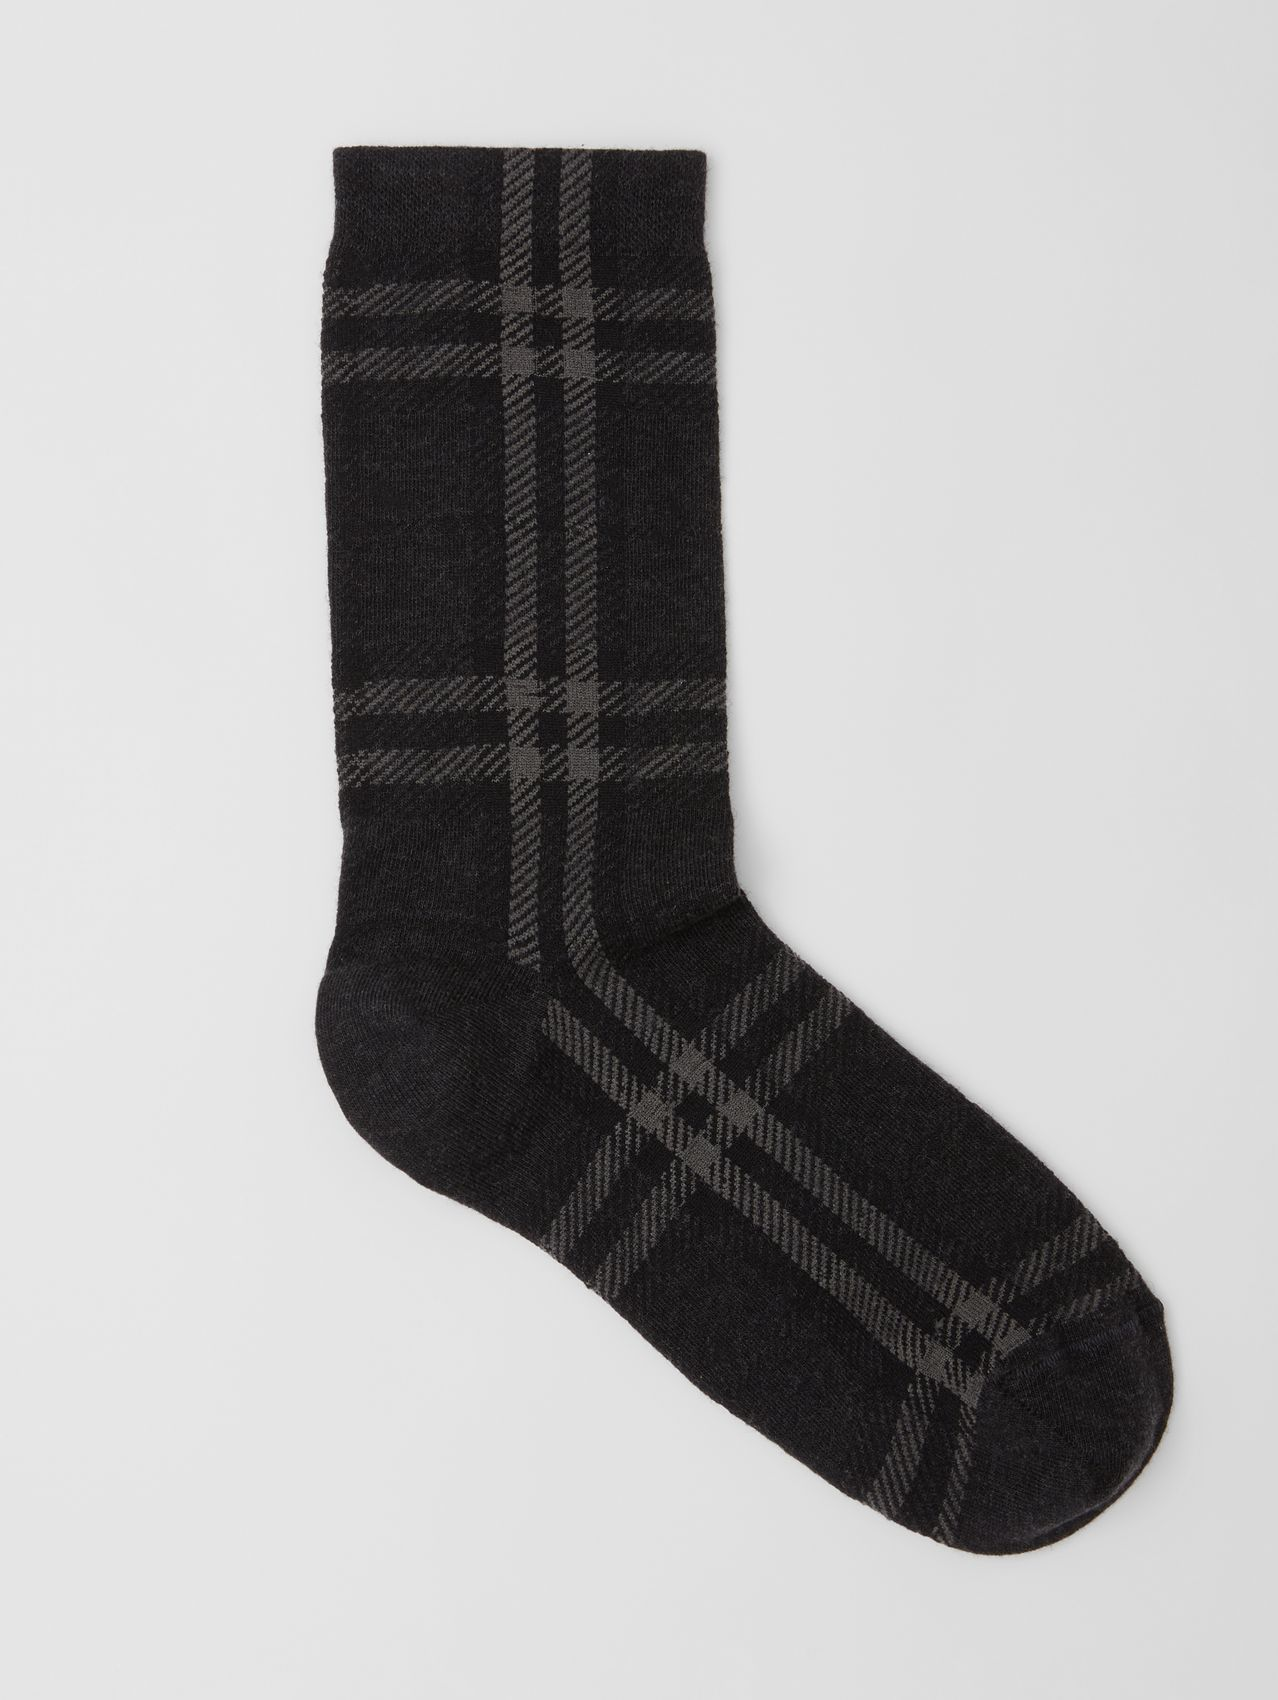 Check Intarsia Technical Cotton Socks in Dark Charcoal